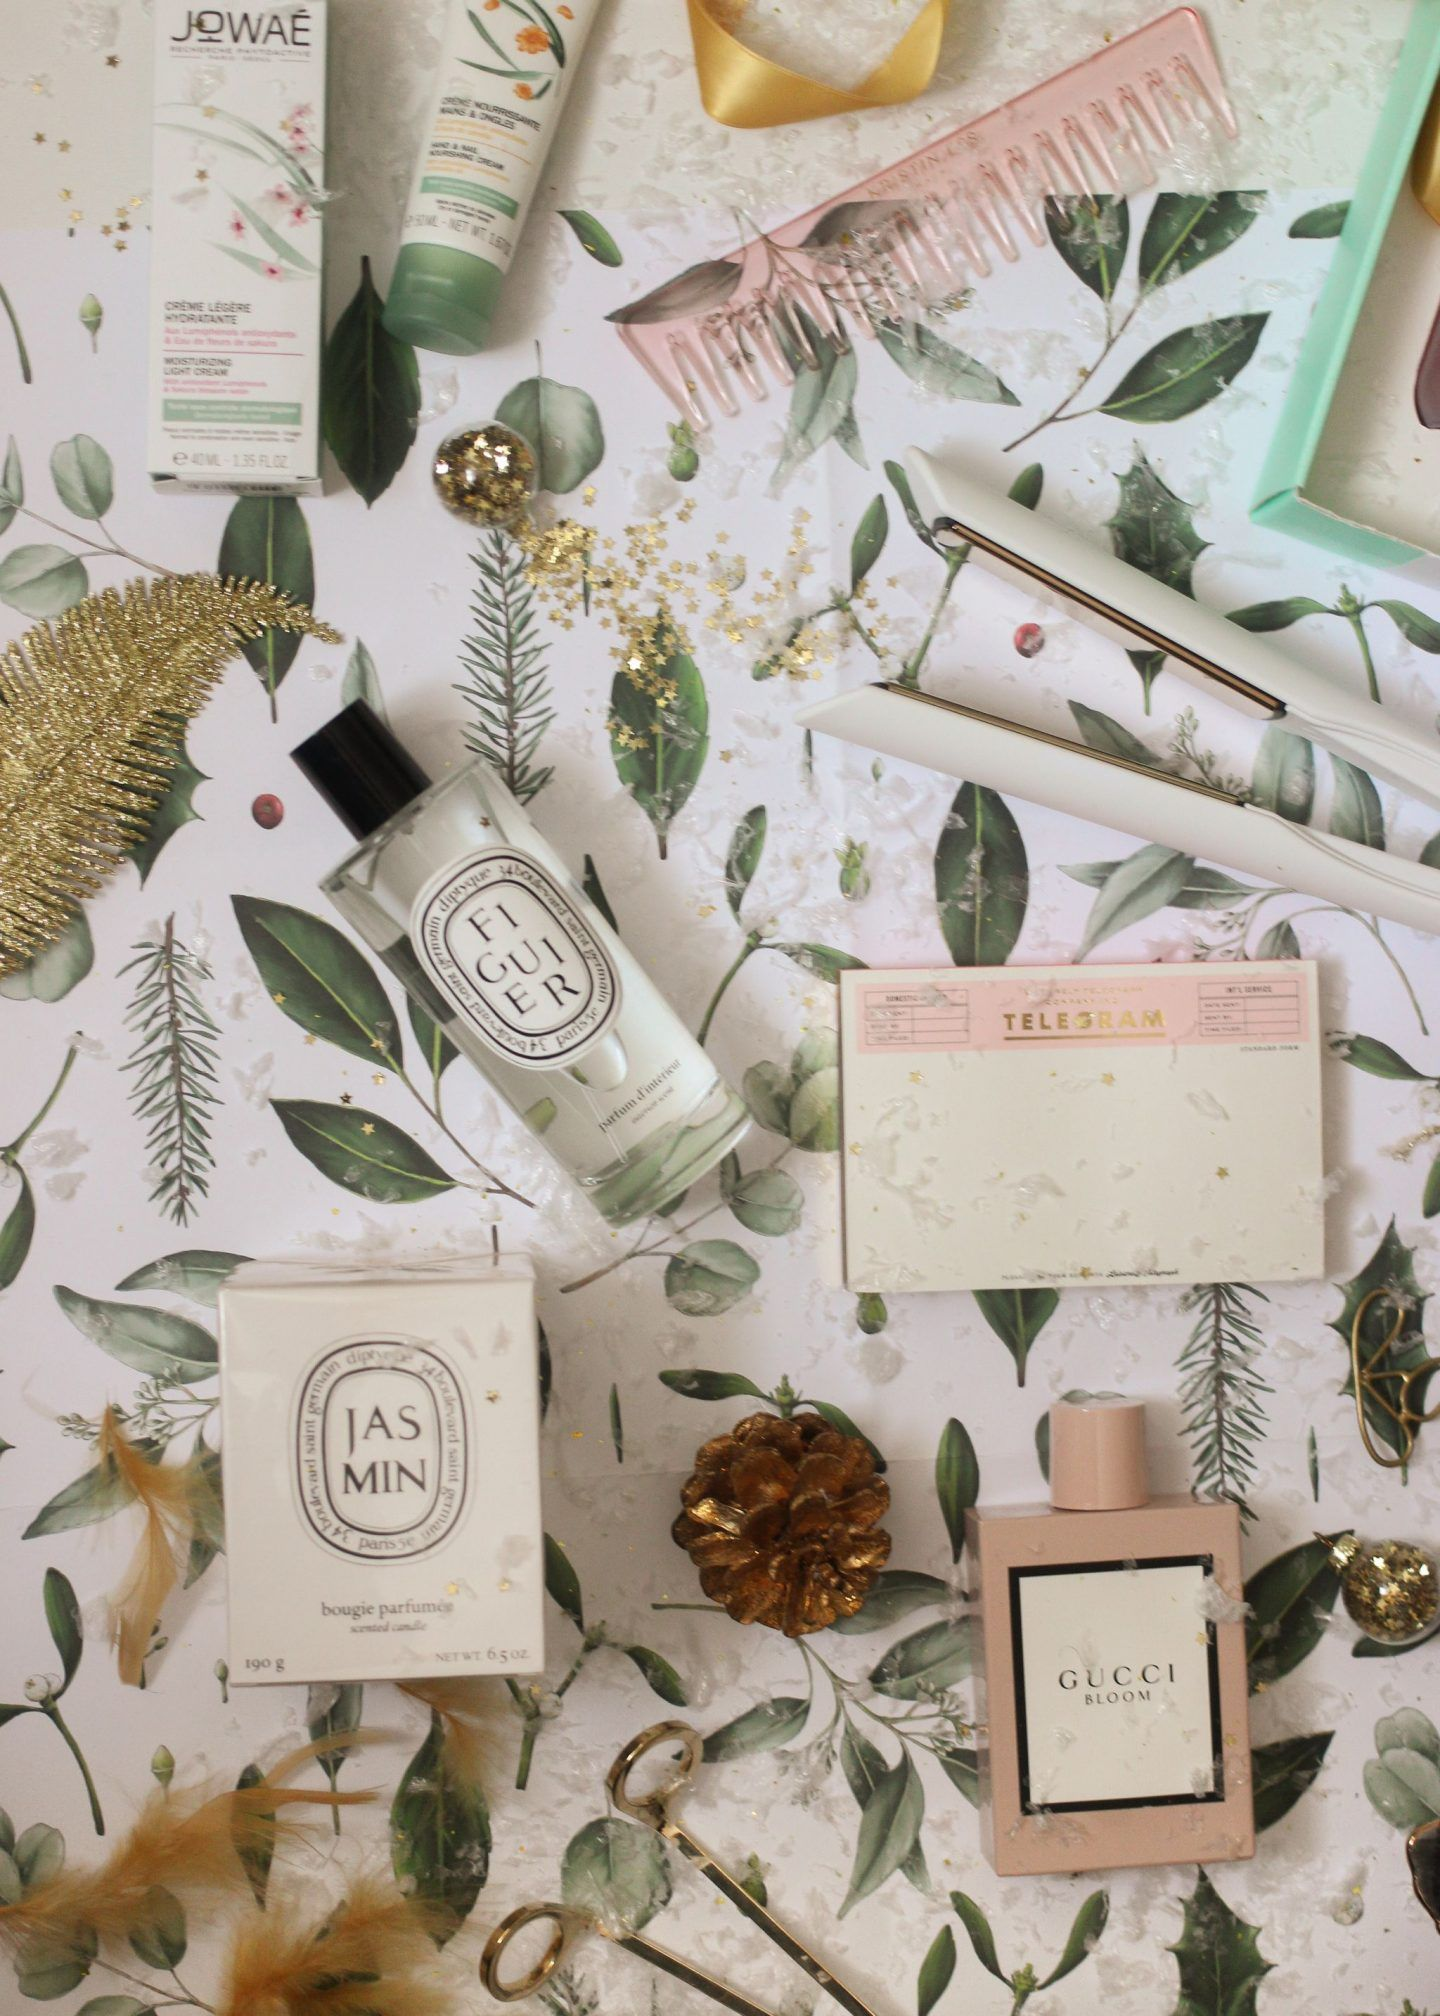 A lastminute gift guide last minute gifts gift guide